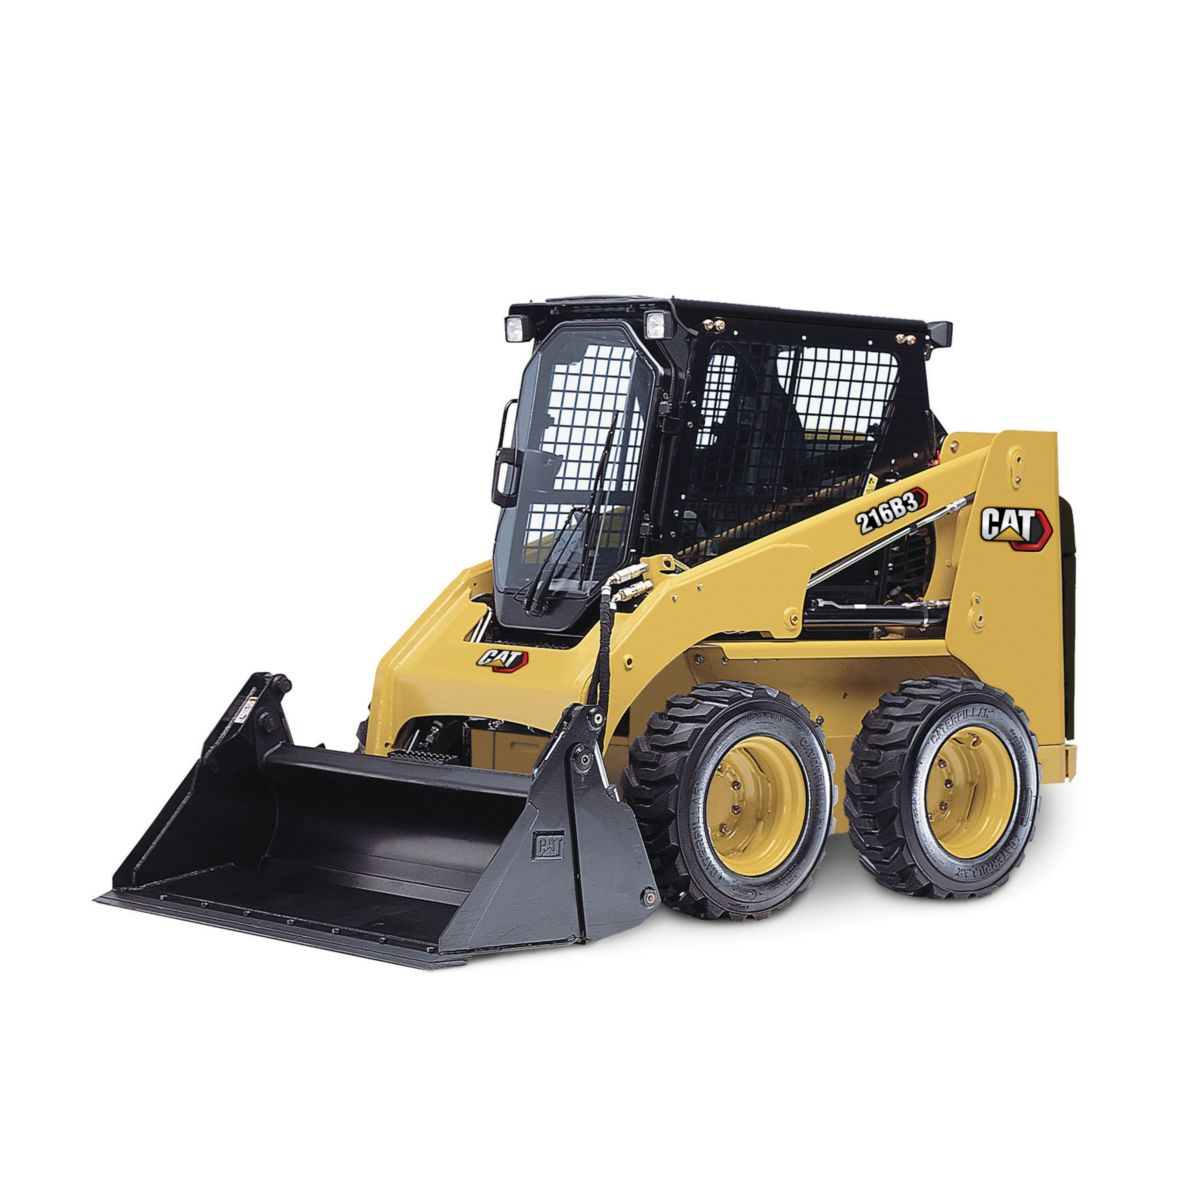 1576mm62inBolt-OnCuttingEdge buckets-skid-steer-loader